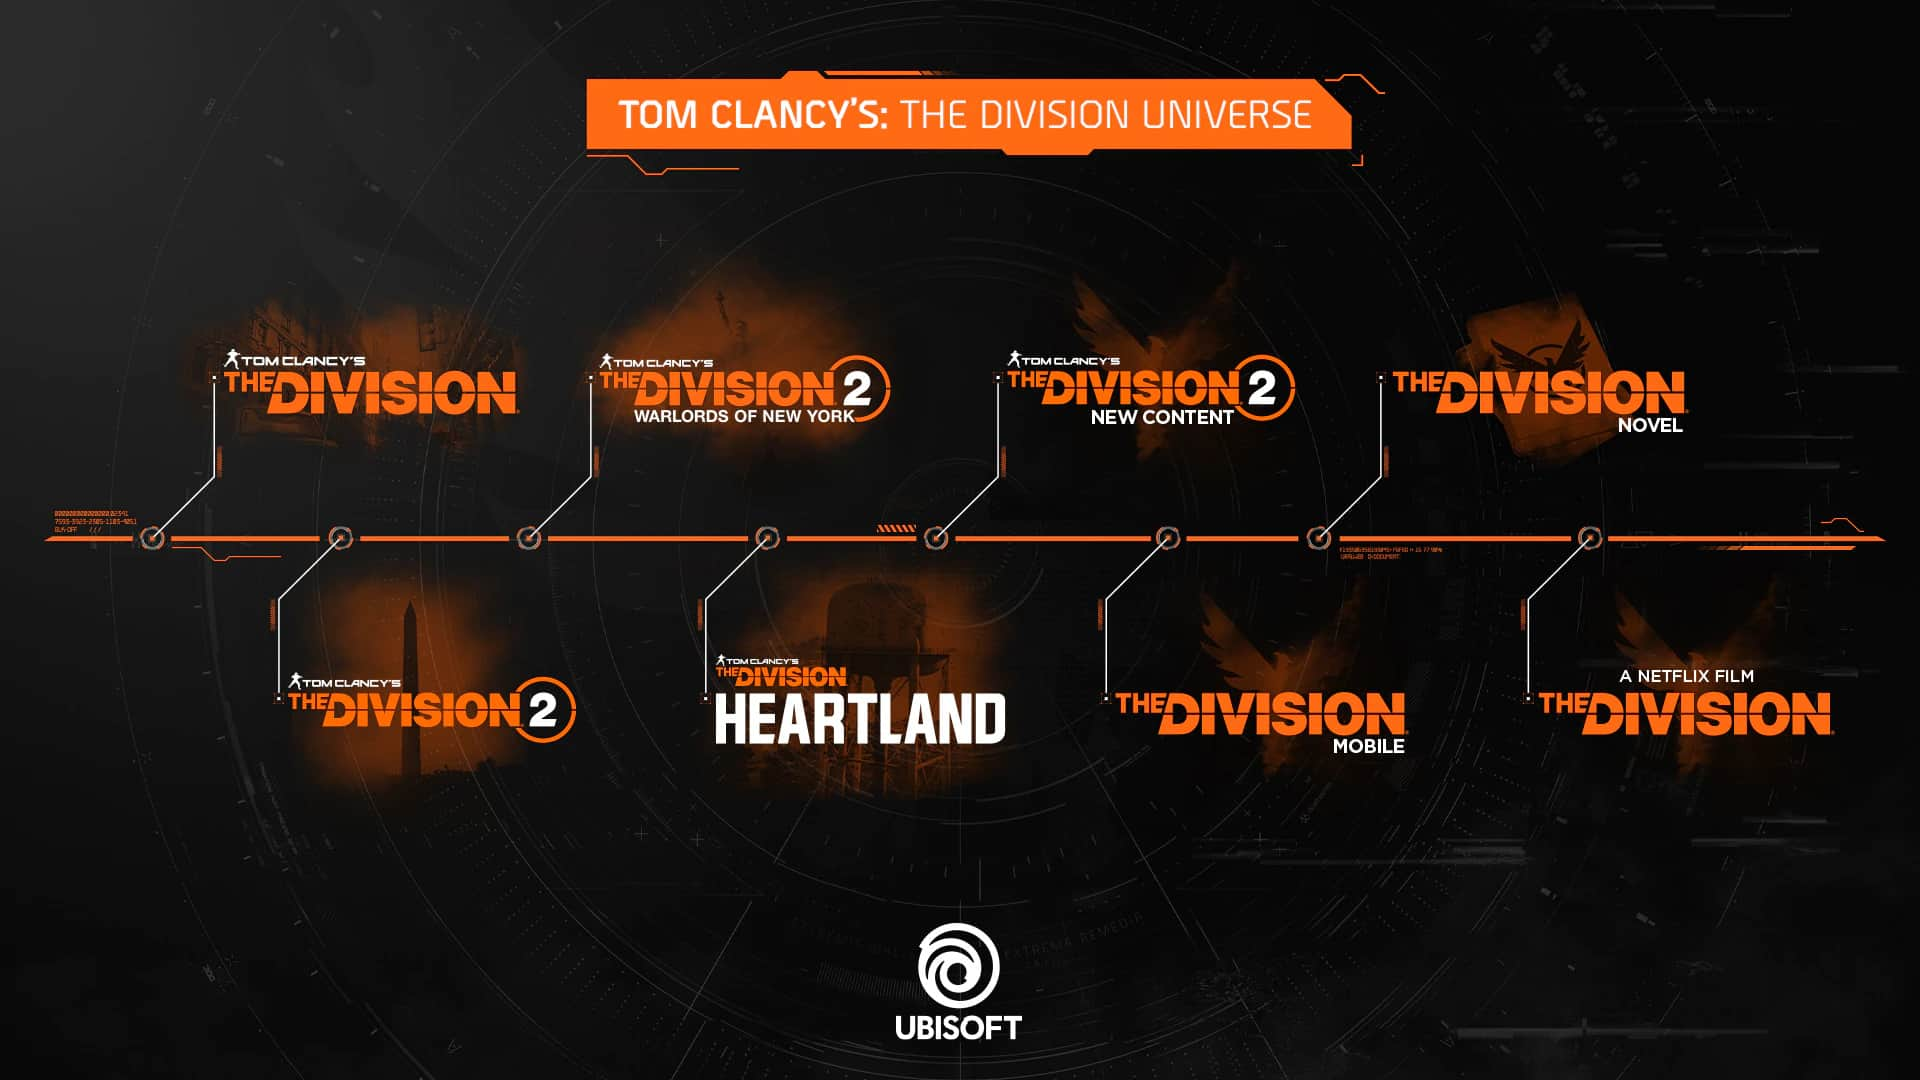 Tom Clancys The Division Mobile Division Universe